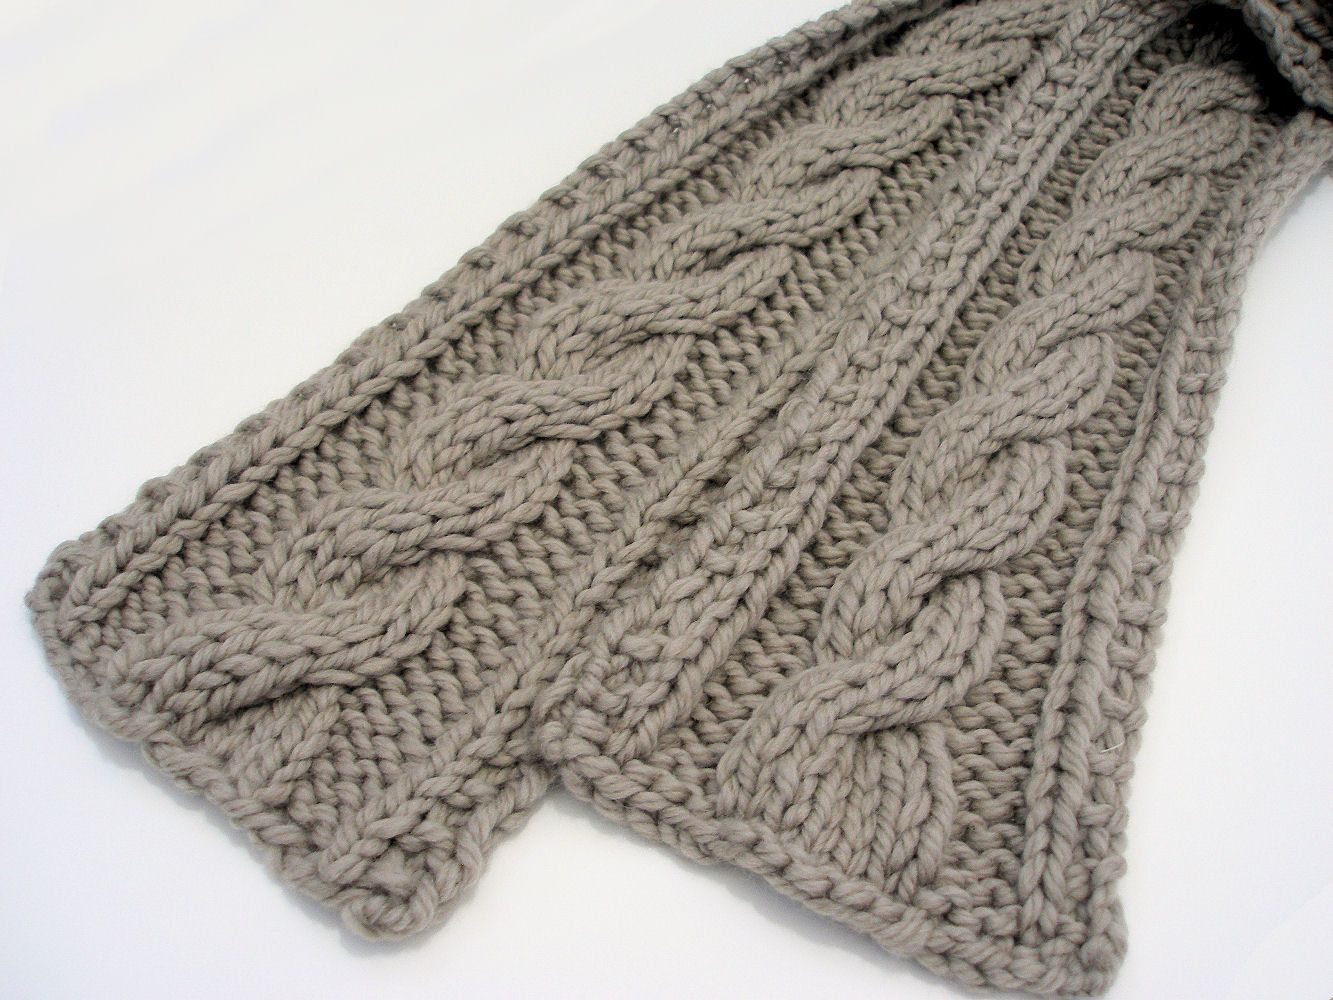 knit or crochet cable pattern | Note: I have had an awful lot of ...